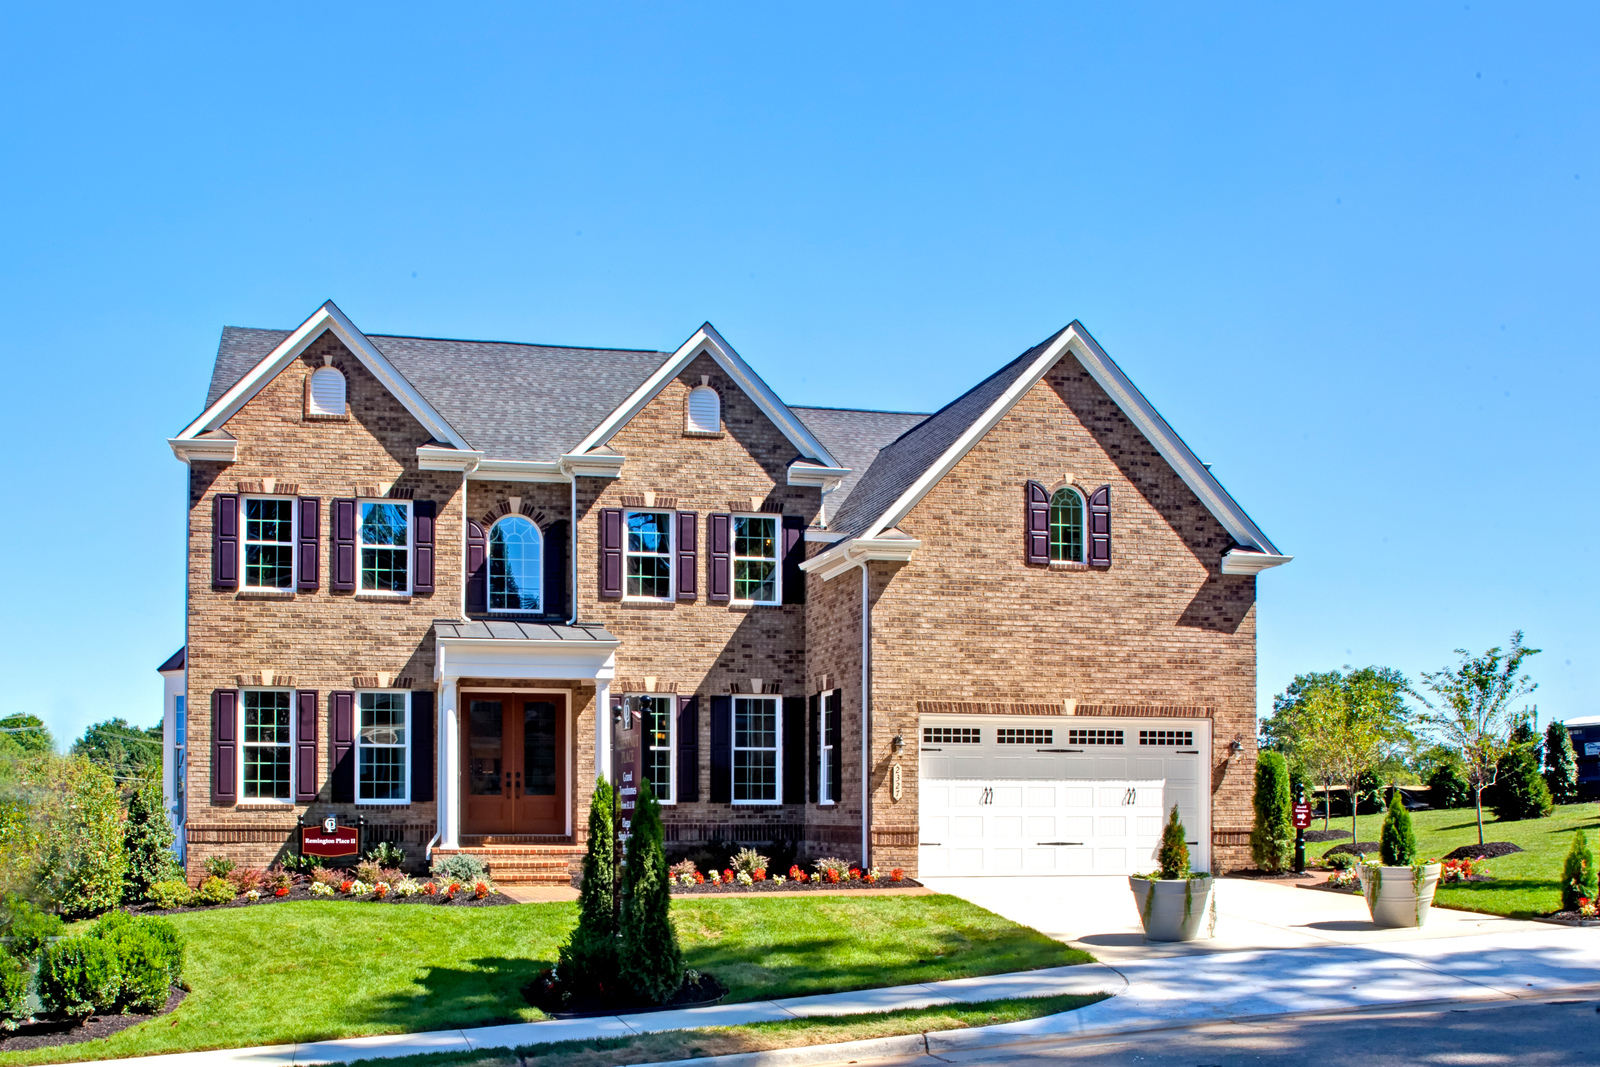 Amazing Upper St Clair Home Sites Offering Home Designs That Fit Any Lifestyle